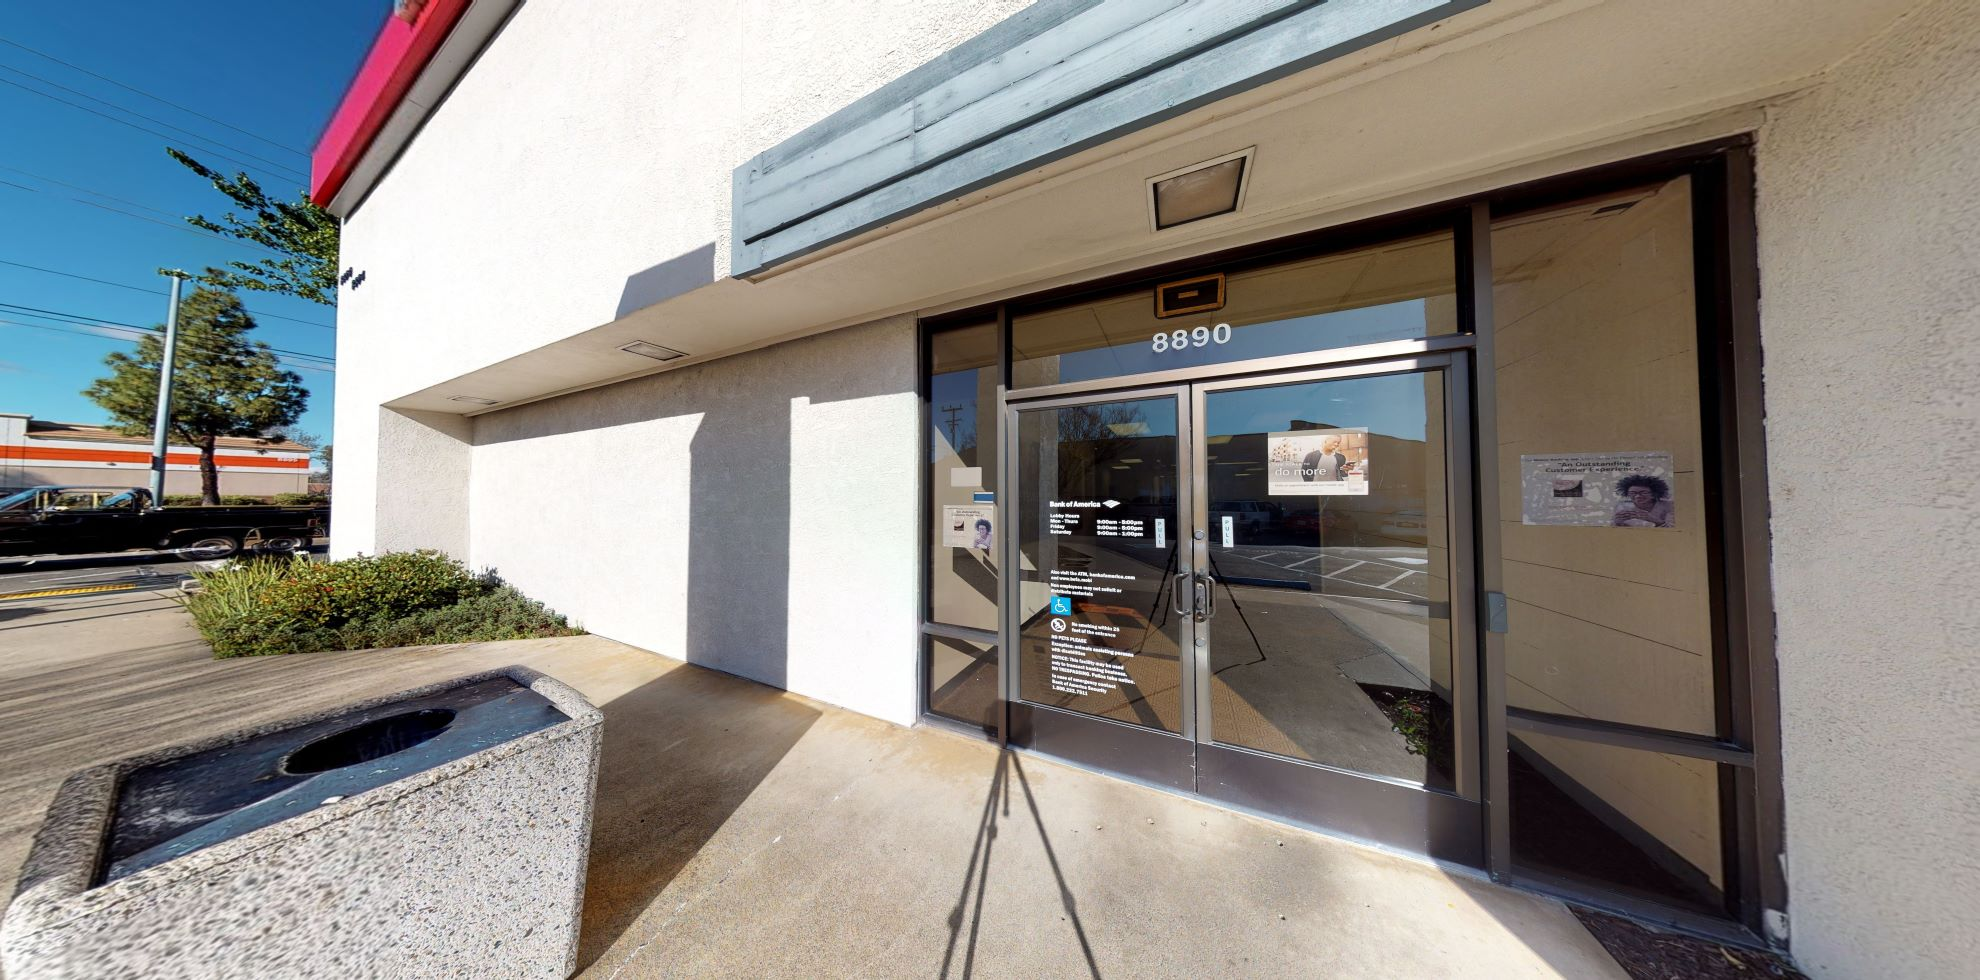 Bank of America financial center with walk-up ATM | 8890 Greenback Ln, Orangevale, CA 95662